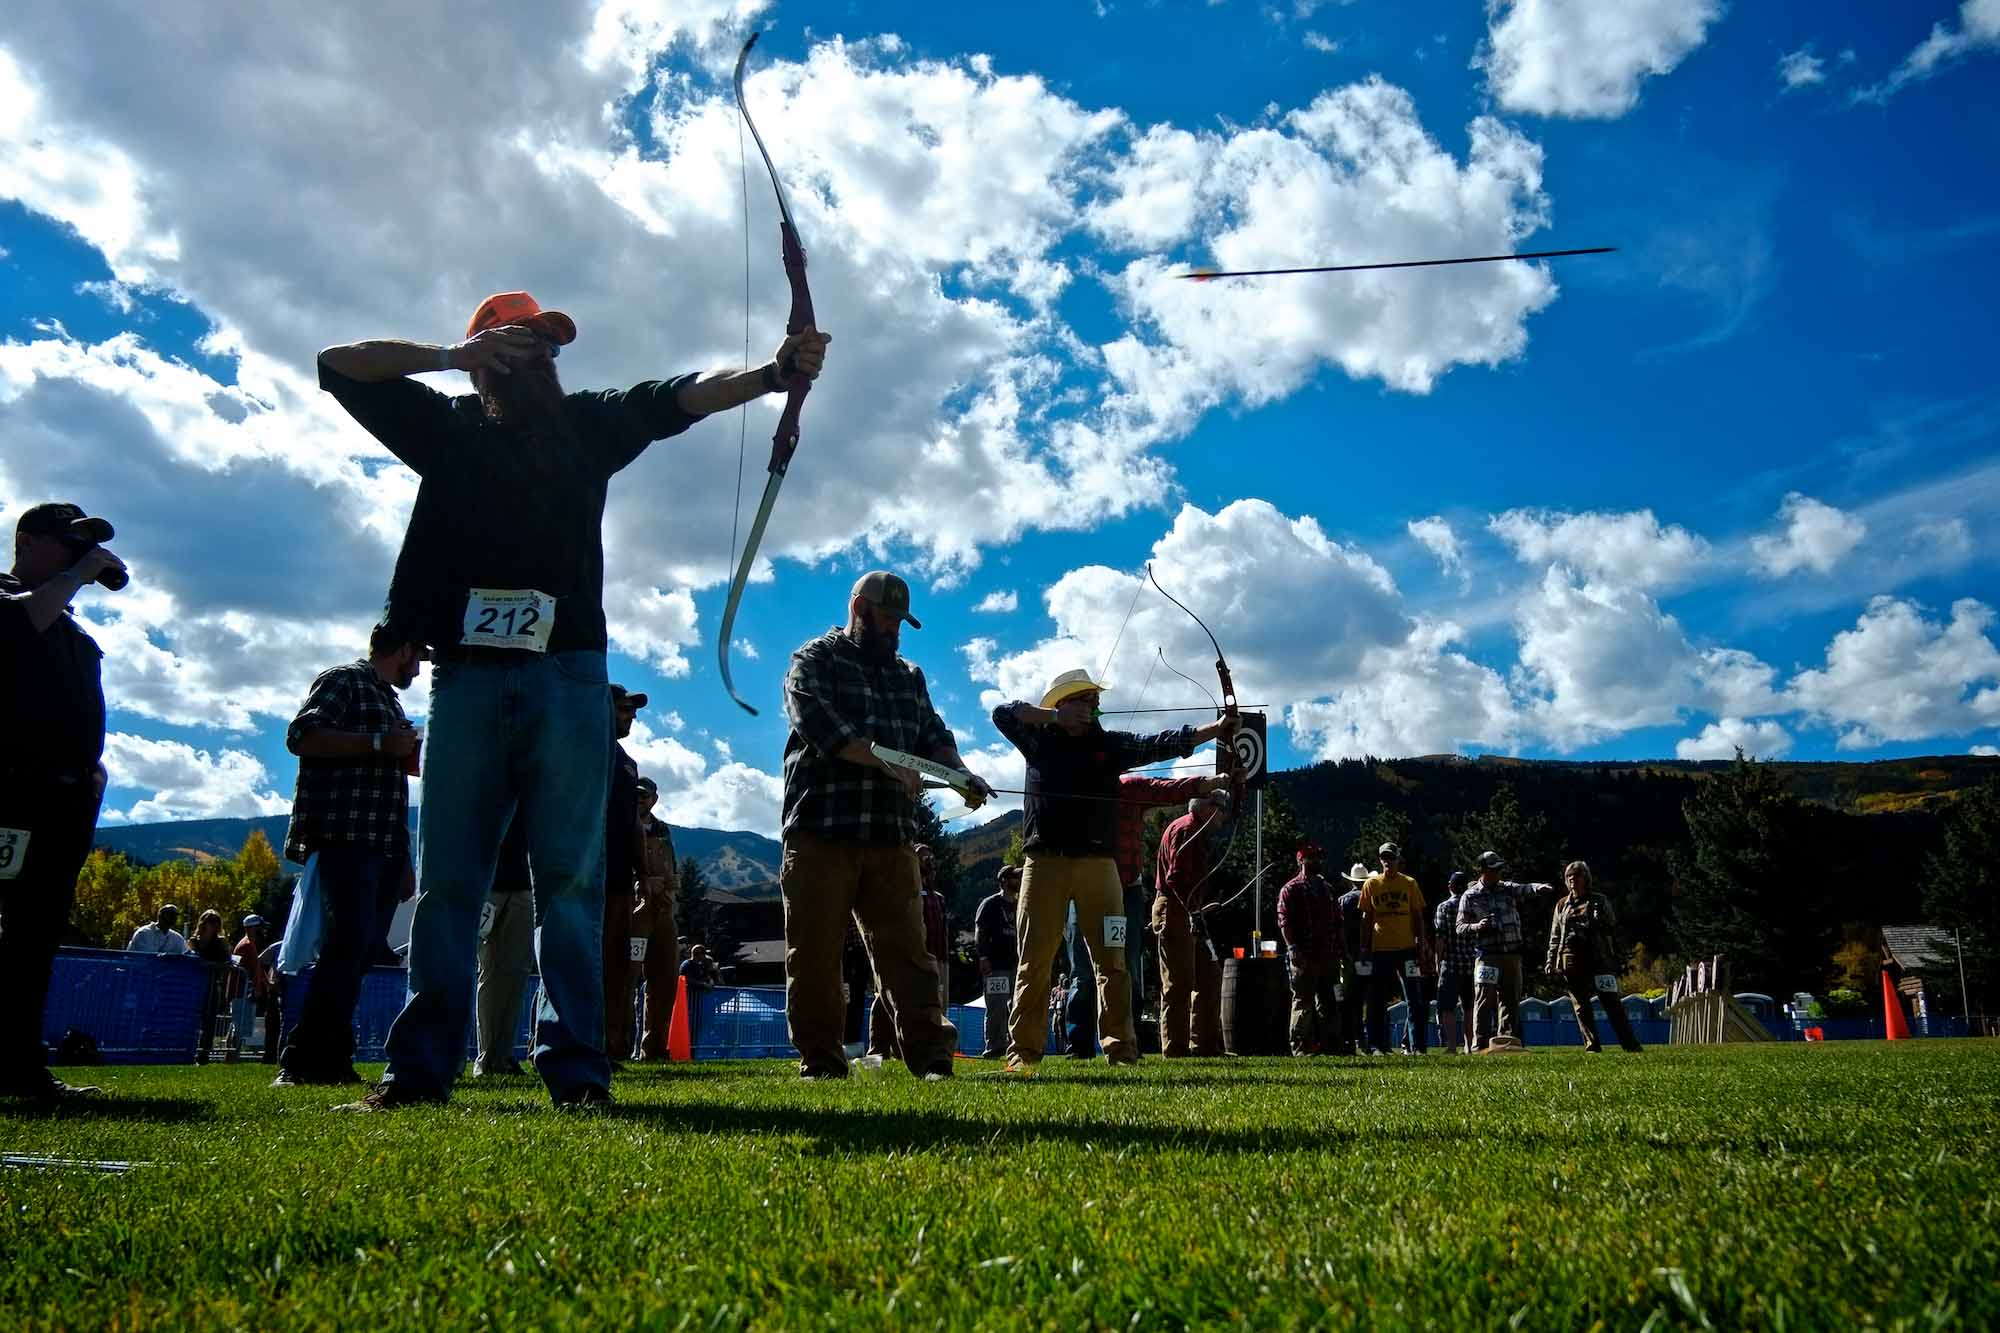 Rob MacDonald competes in the archery competition during the Man of the Cliff event on Saturday, Sept. 27, 2014 in Avon, Colo. The Man of the Cliff event is a fundraiser, donating 100% of its proceeds to the local charity First Descents.